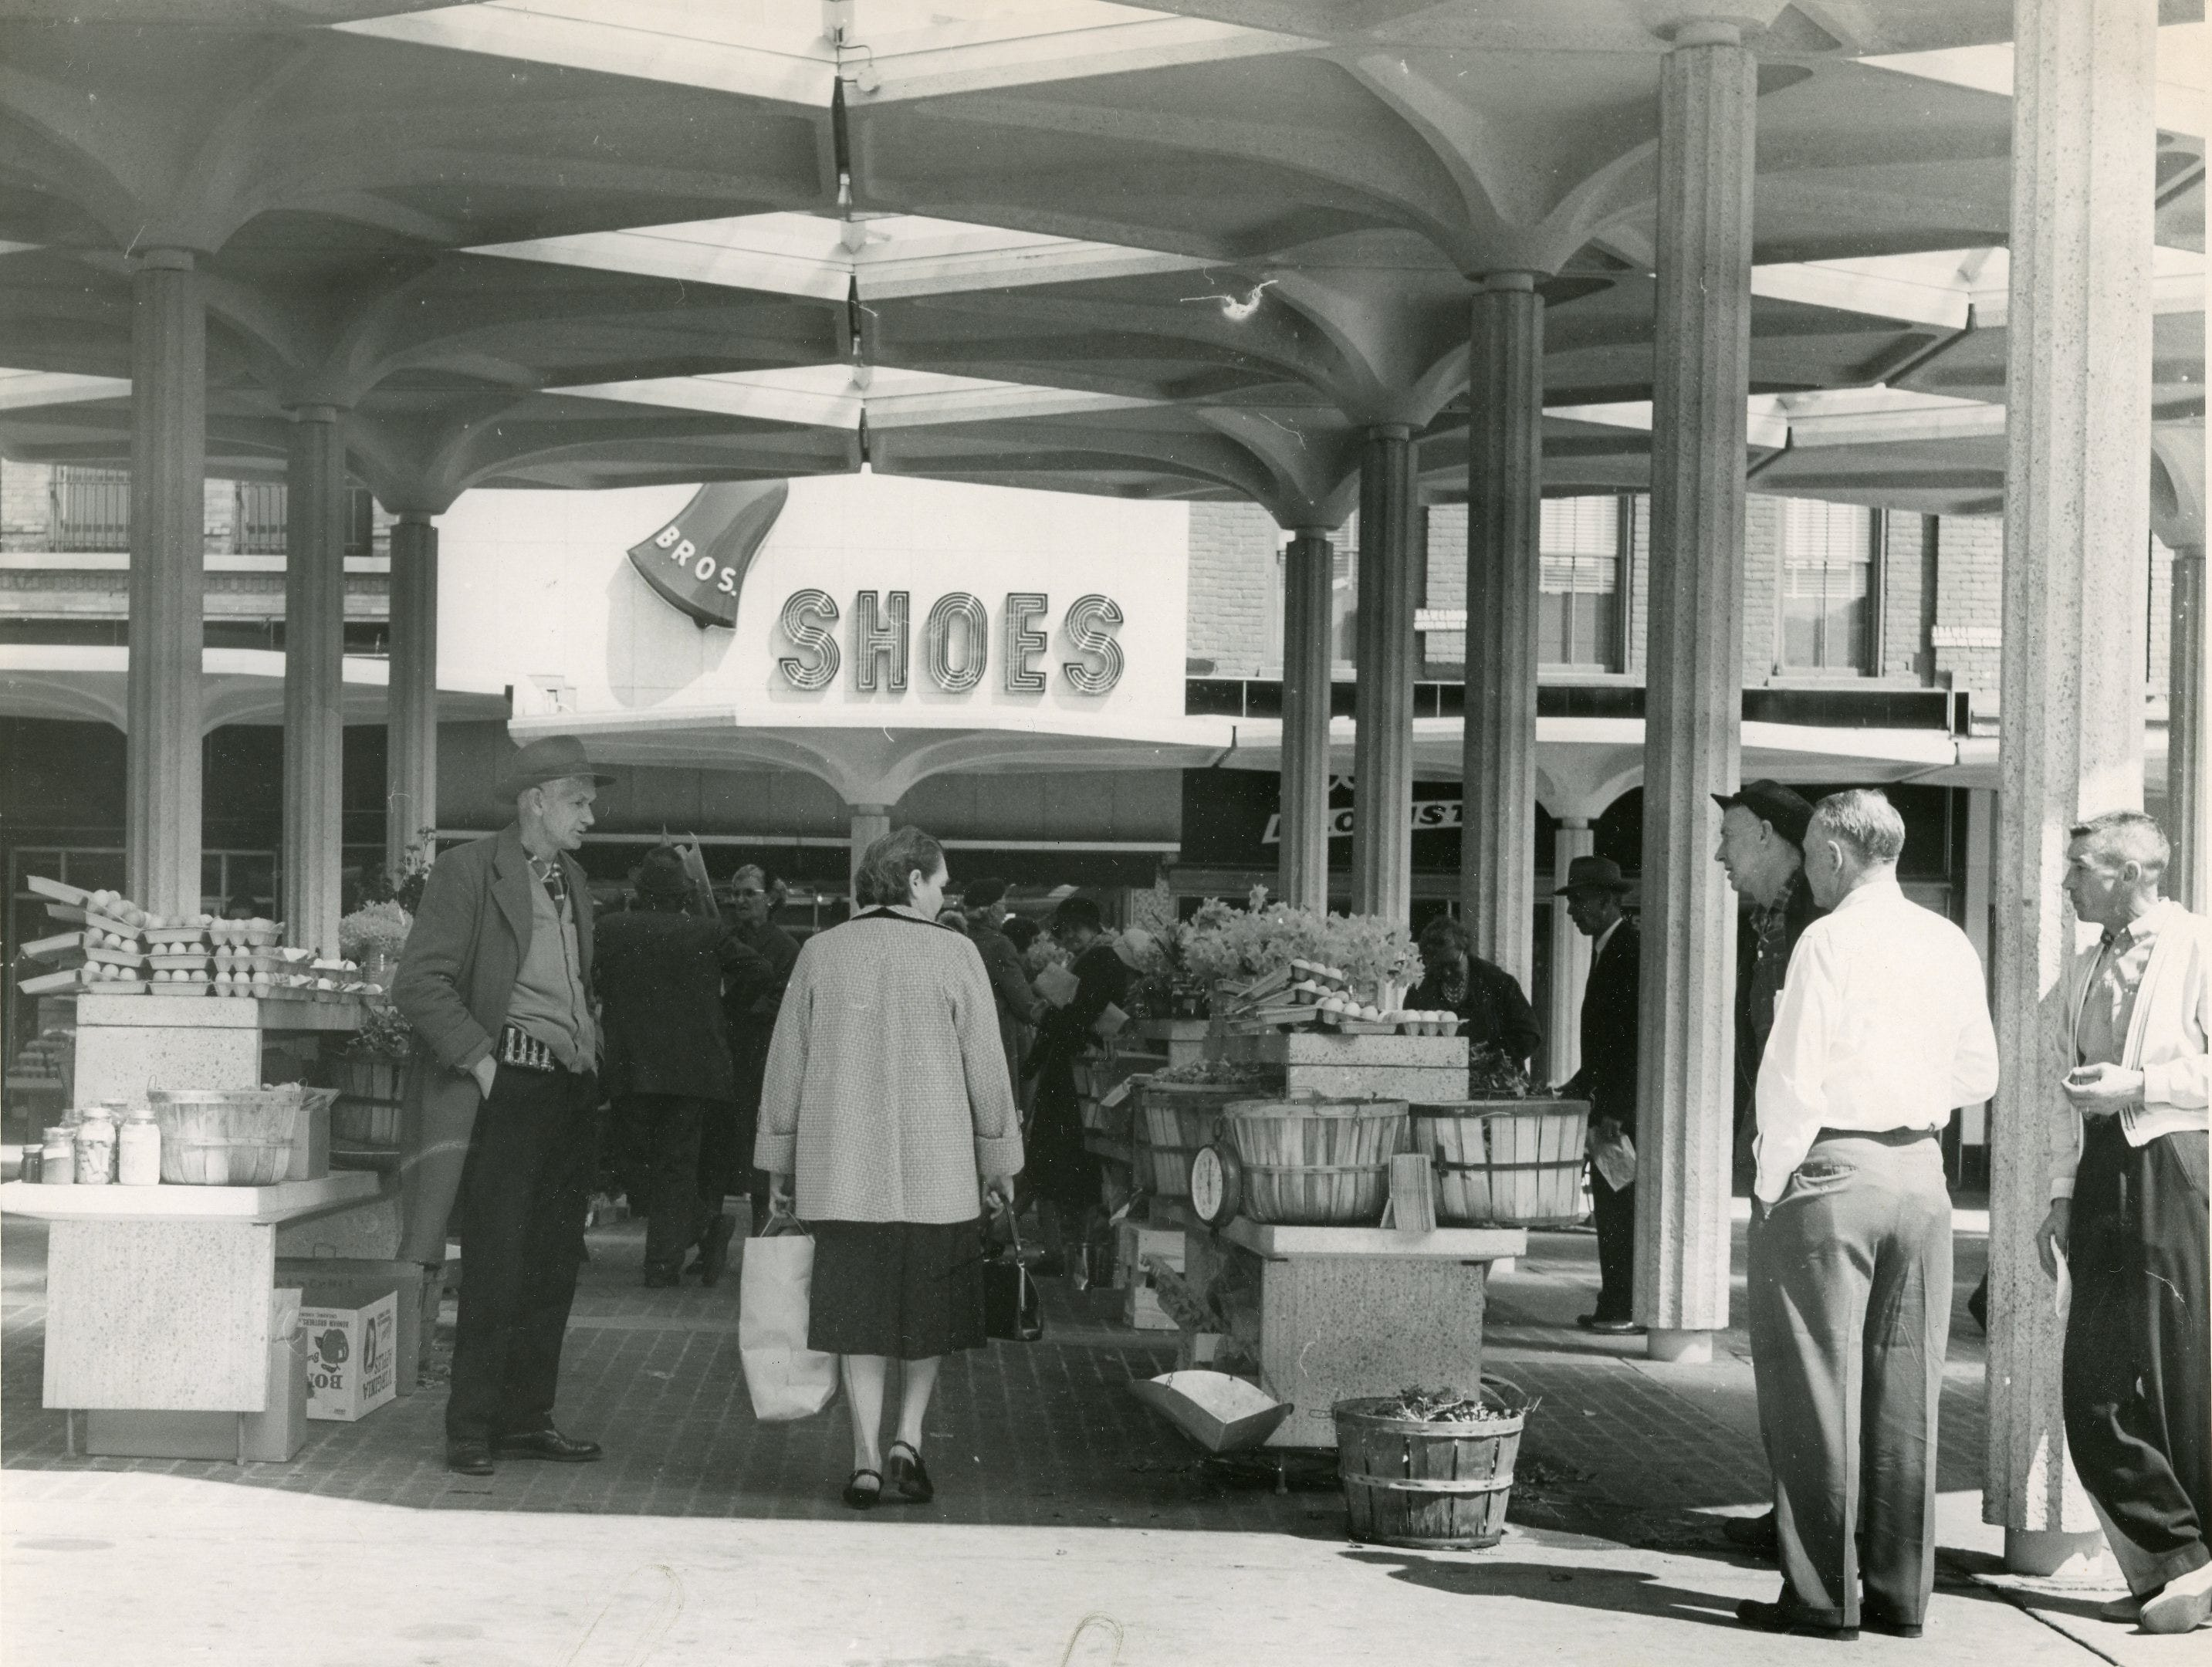 Shoppers browse through Market Square Mall, March, 1962.